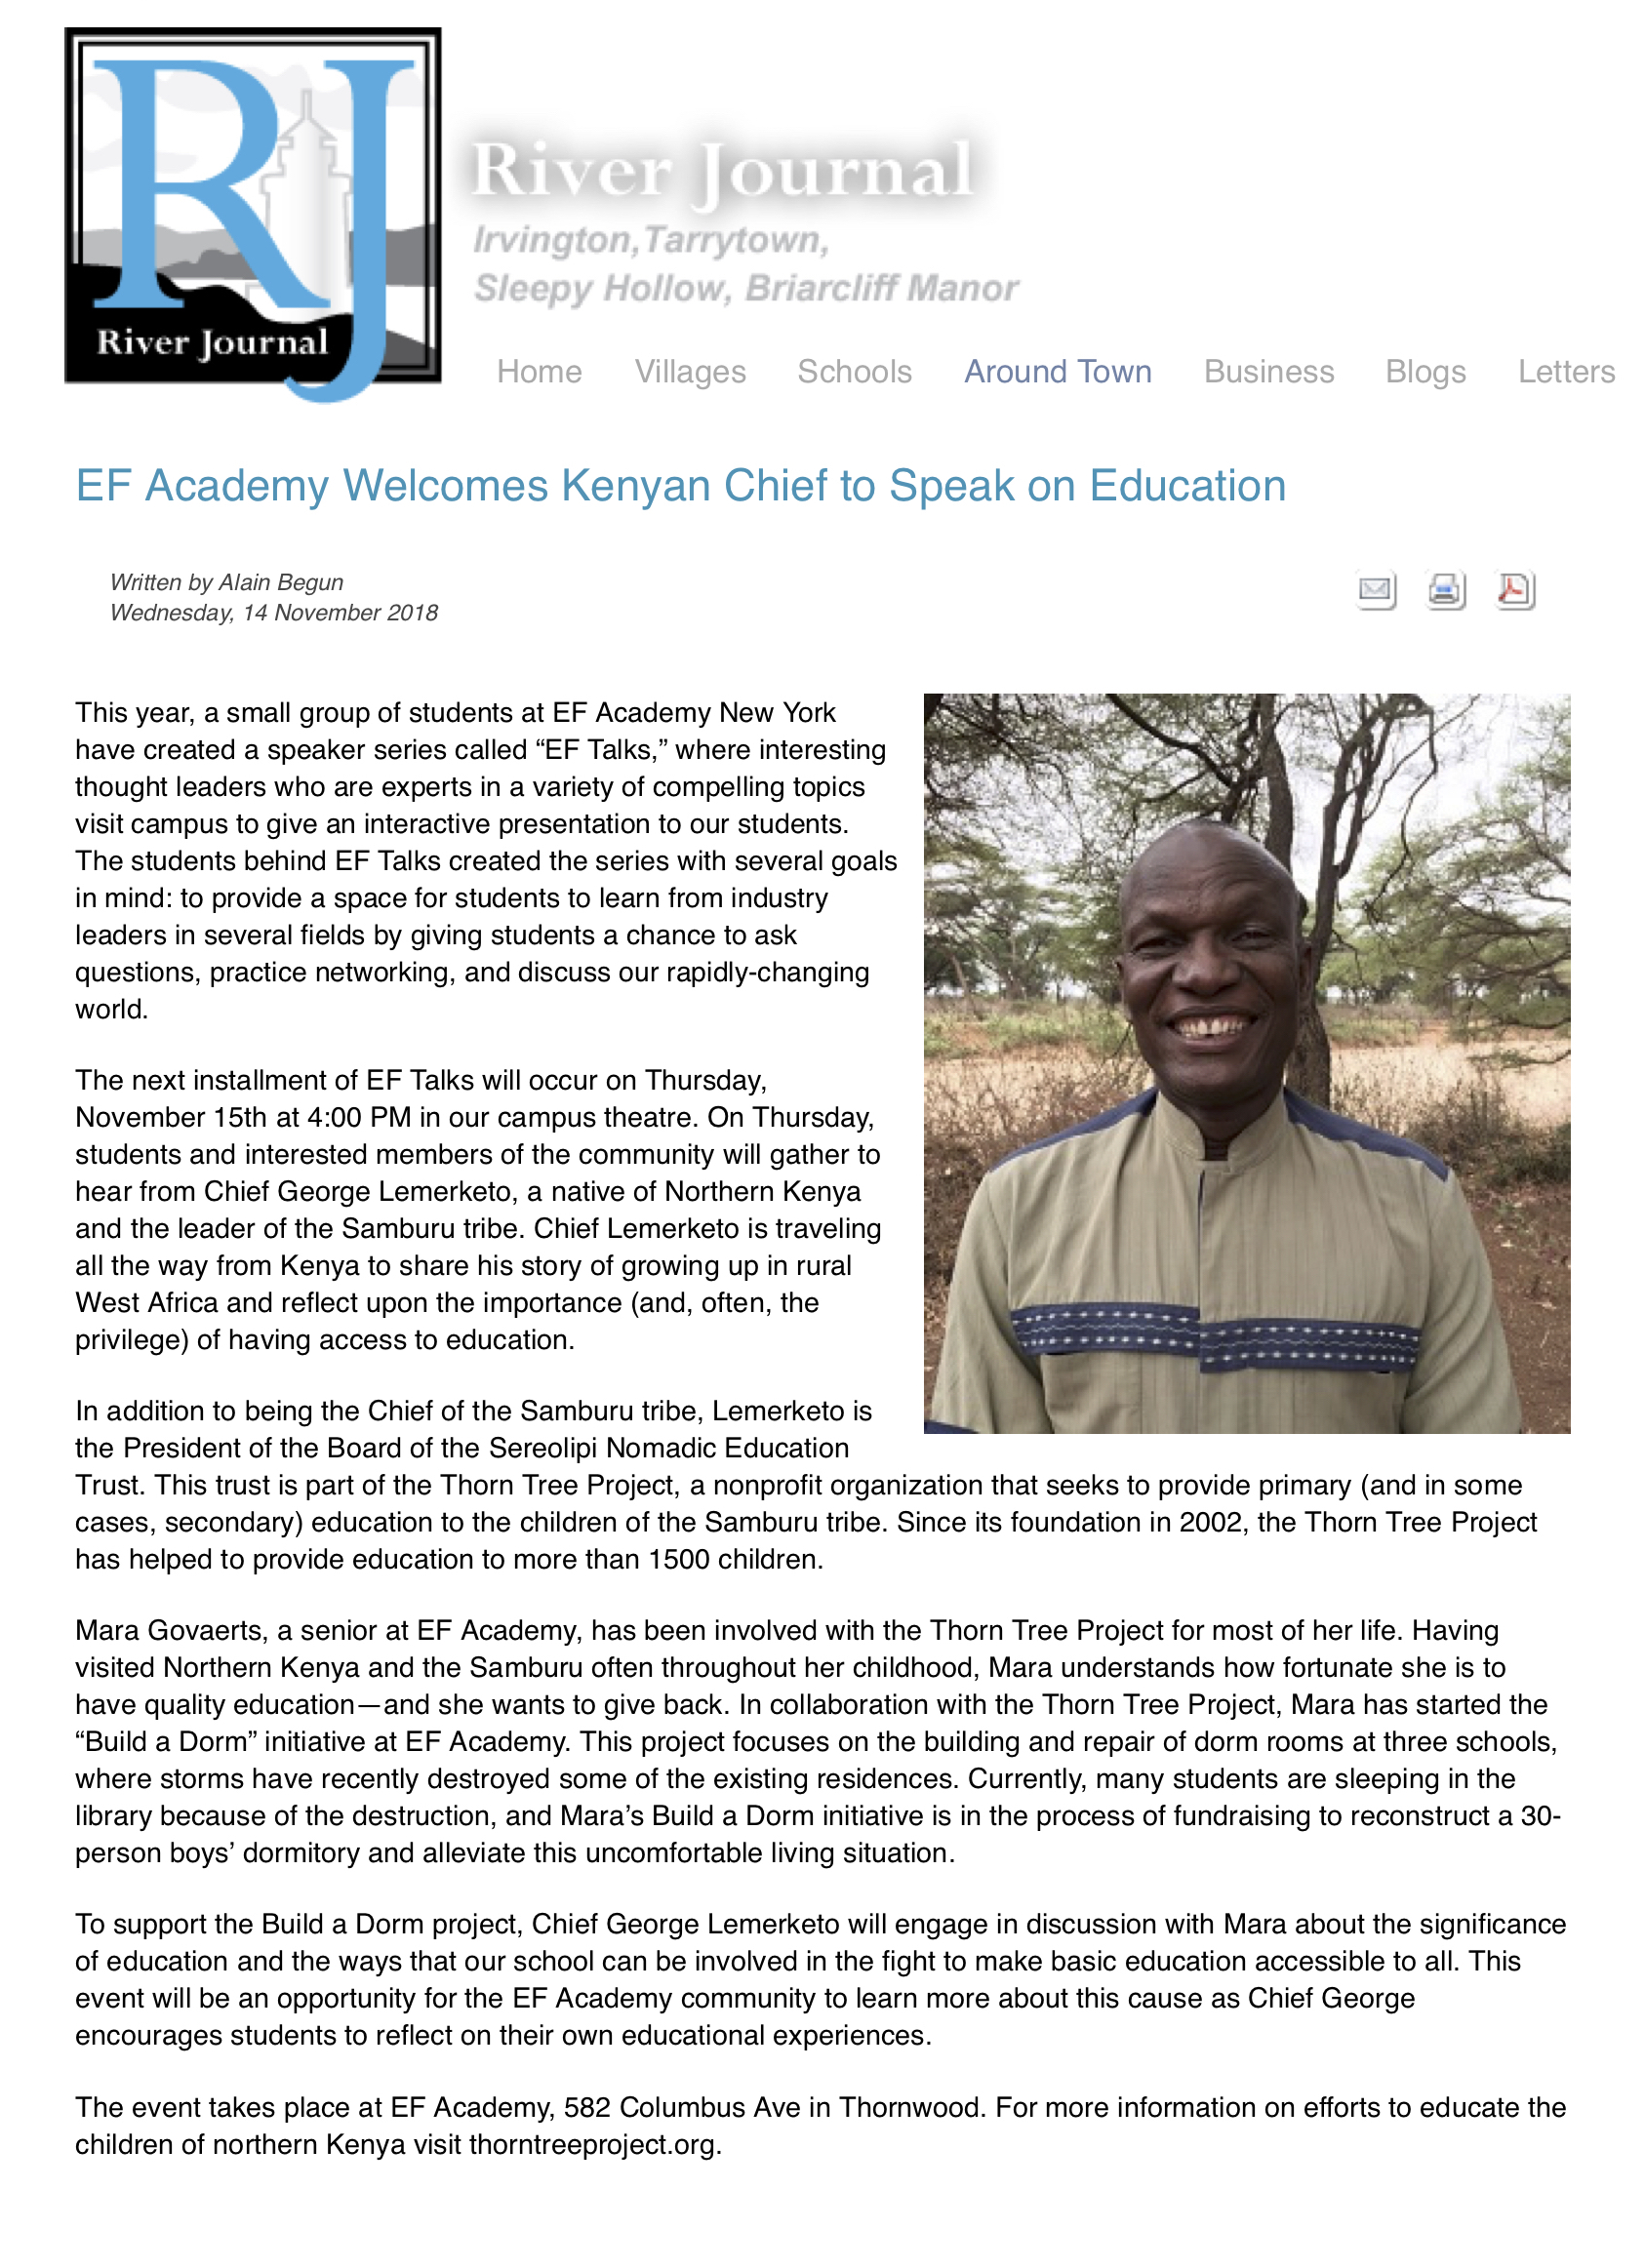 EF Academy Welcomes Kenyan Chief to Speak on Education - River Journal Online |.jpg